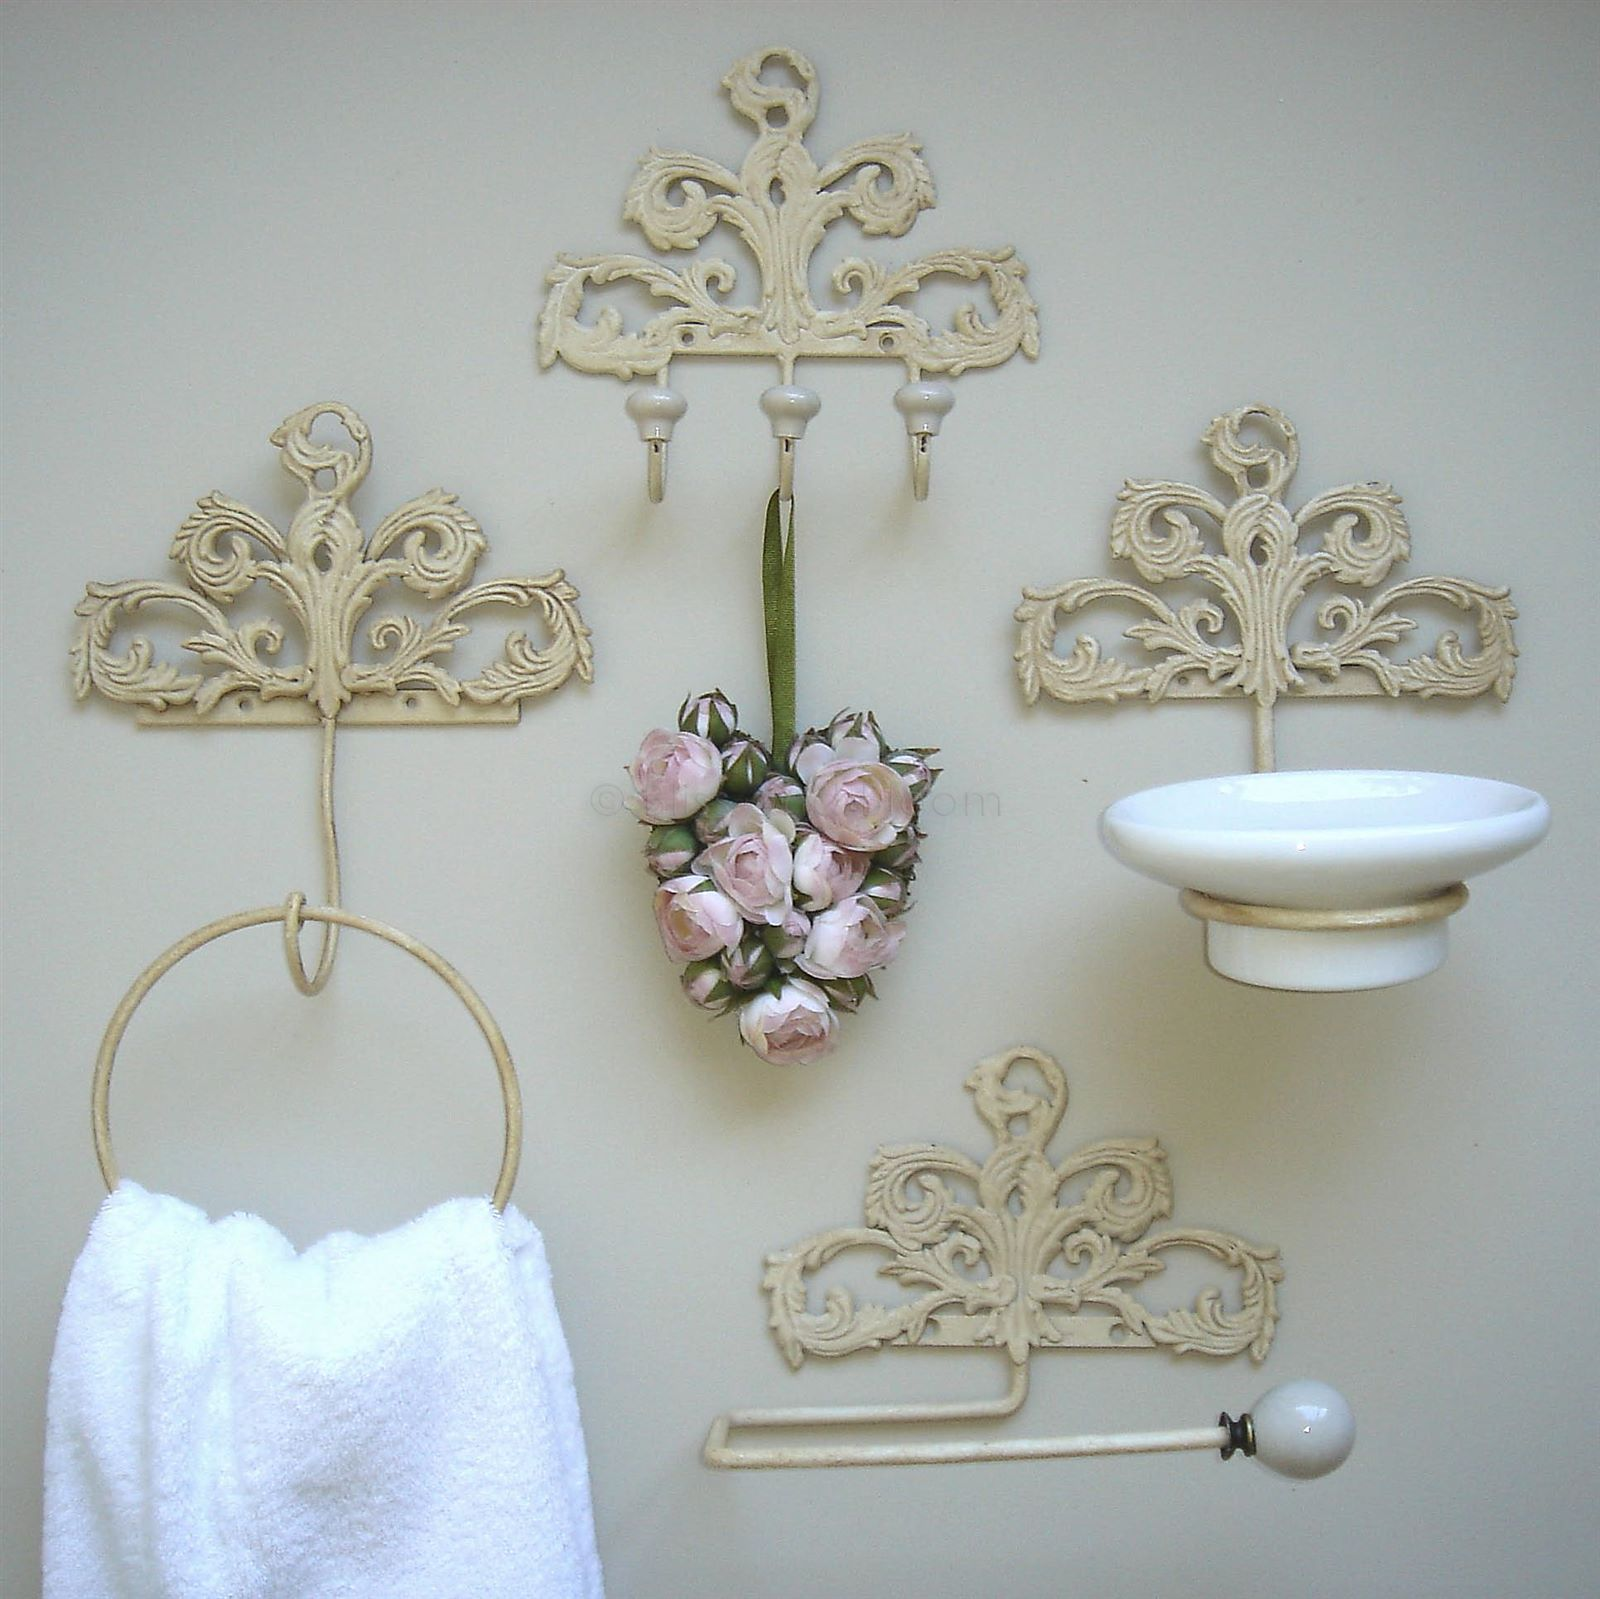 Cream french style bathroom set bliss and bloom ltd for Cream bathroom accessories set